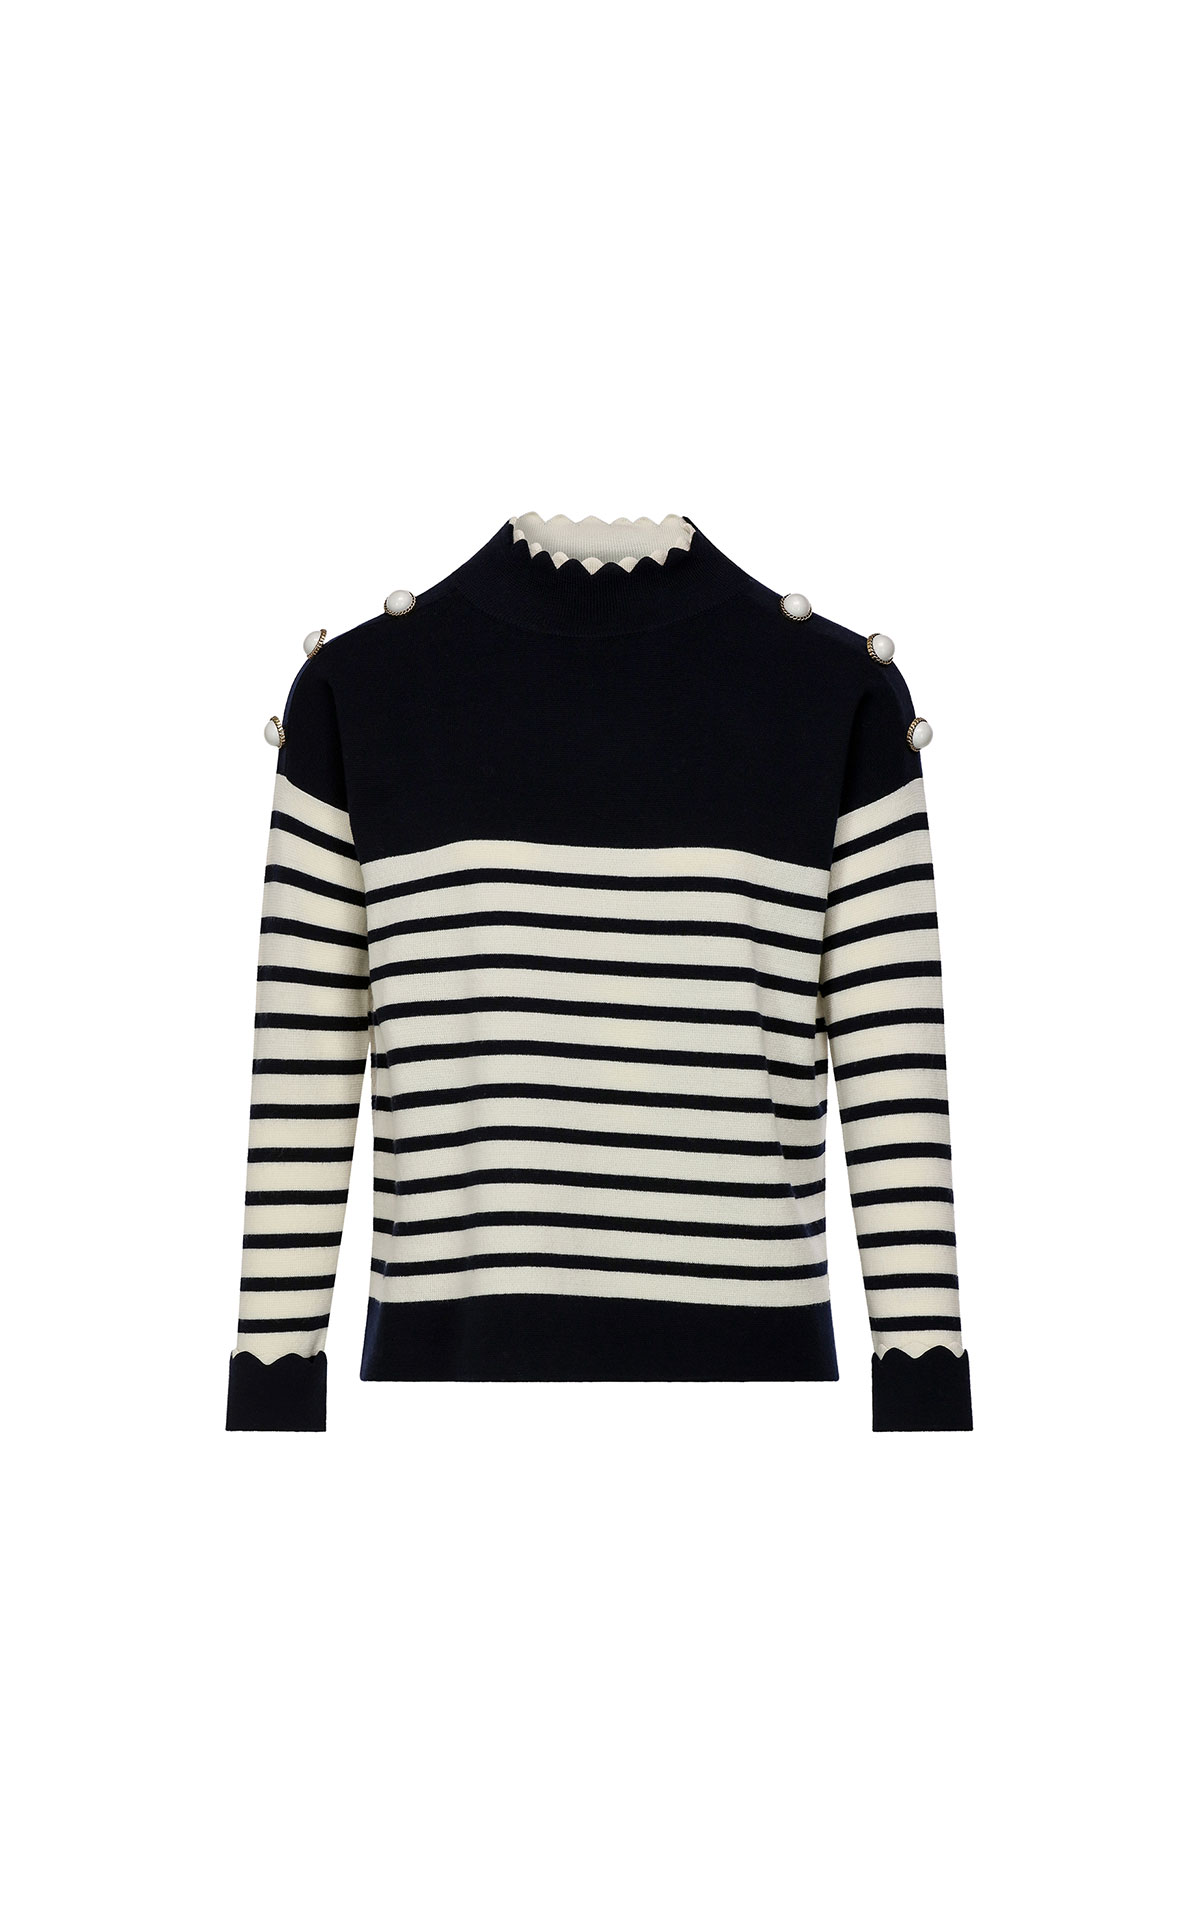 Claudie Pierlot's Minerva Cardigan at The Bicester Village Shopping Collection